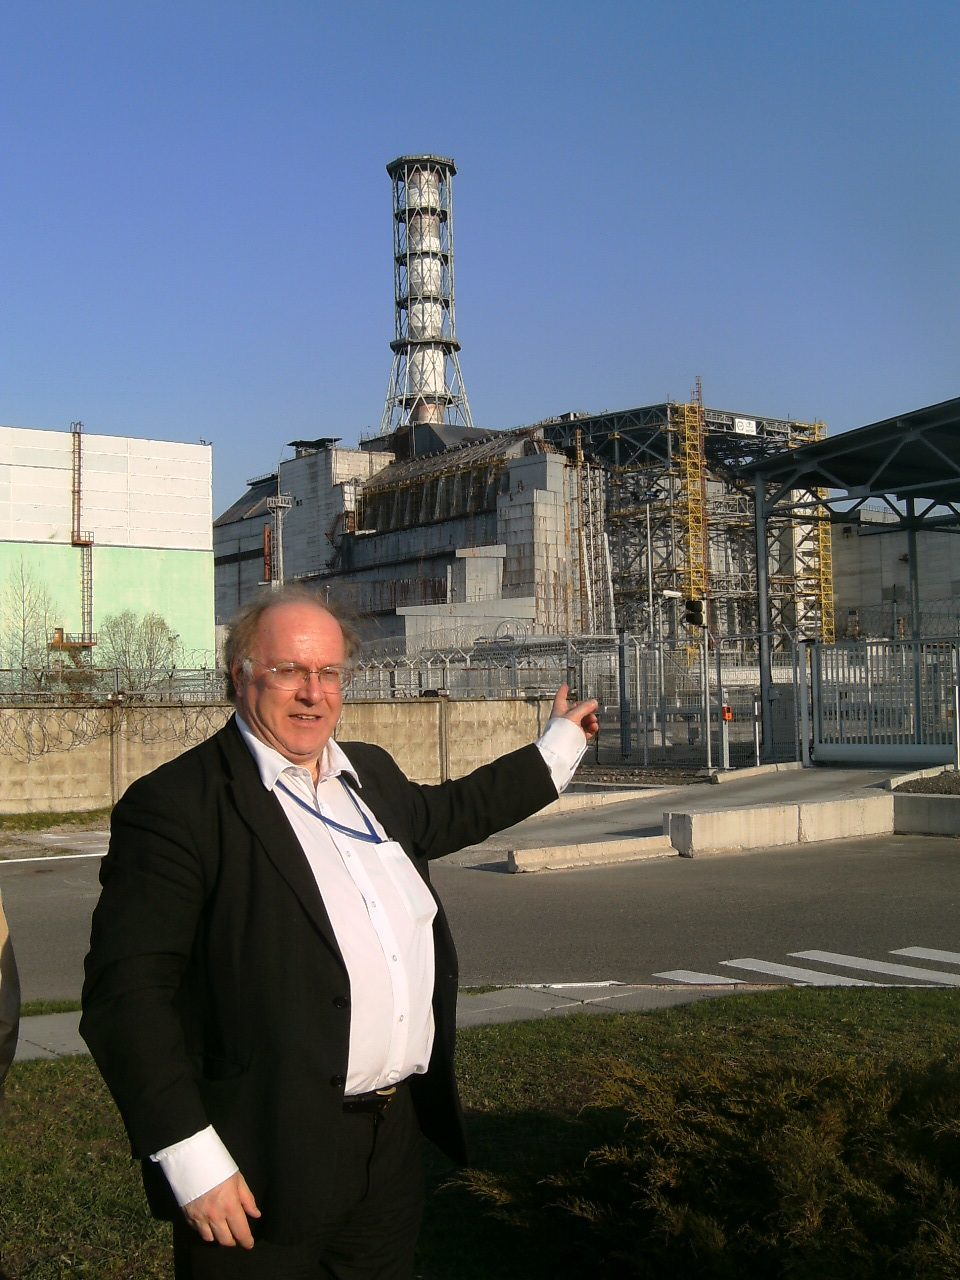 Dr Alan Flowers at the site in Ukraine